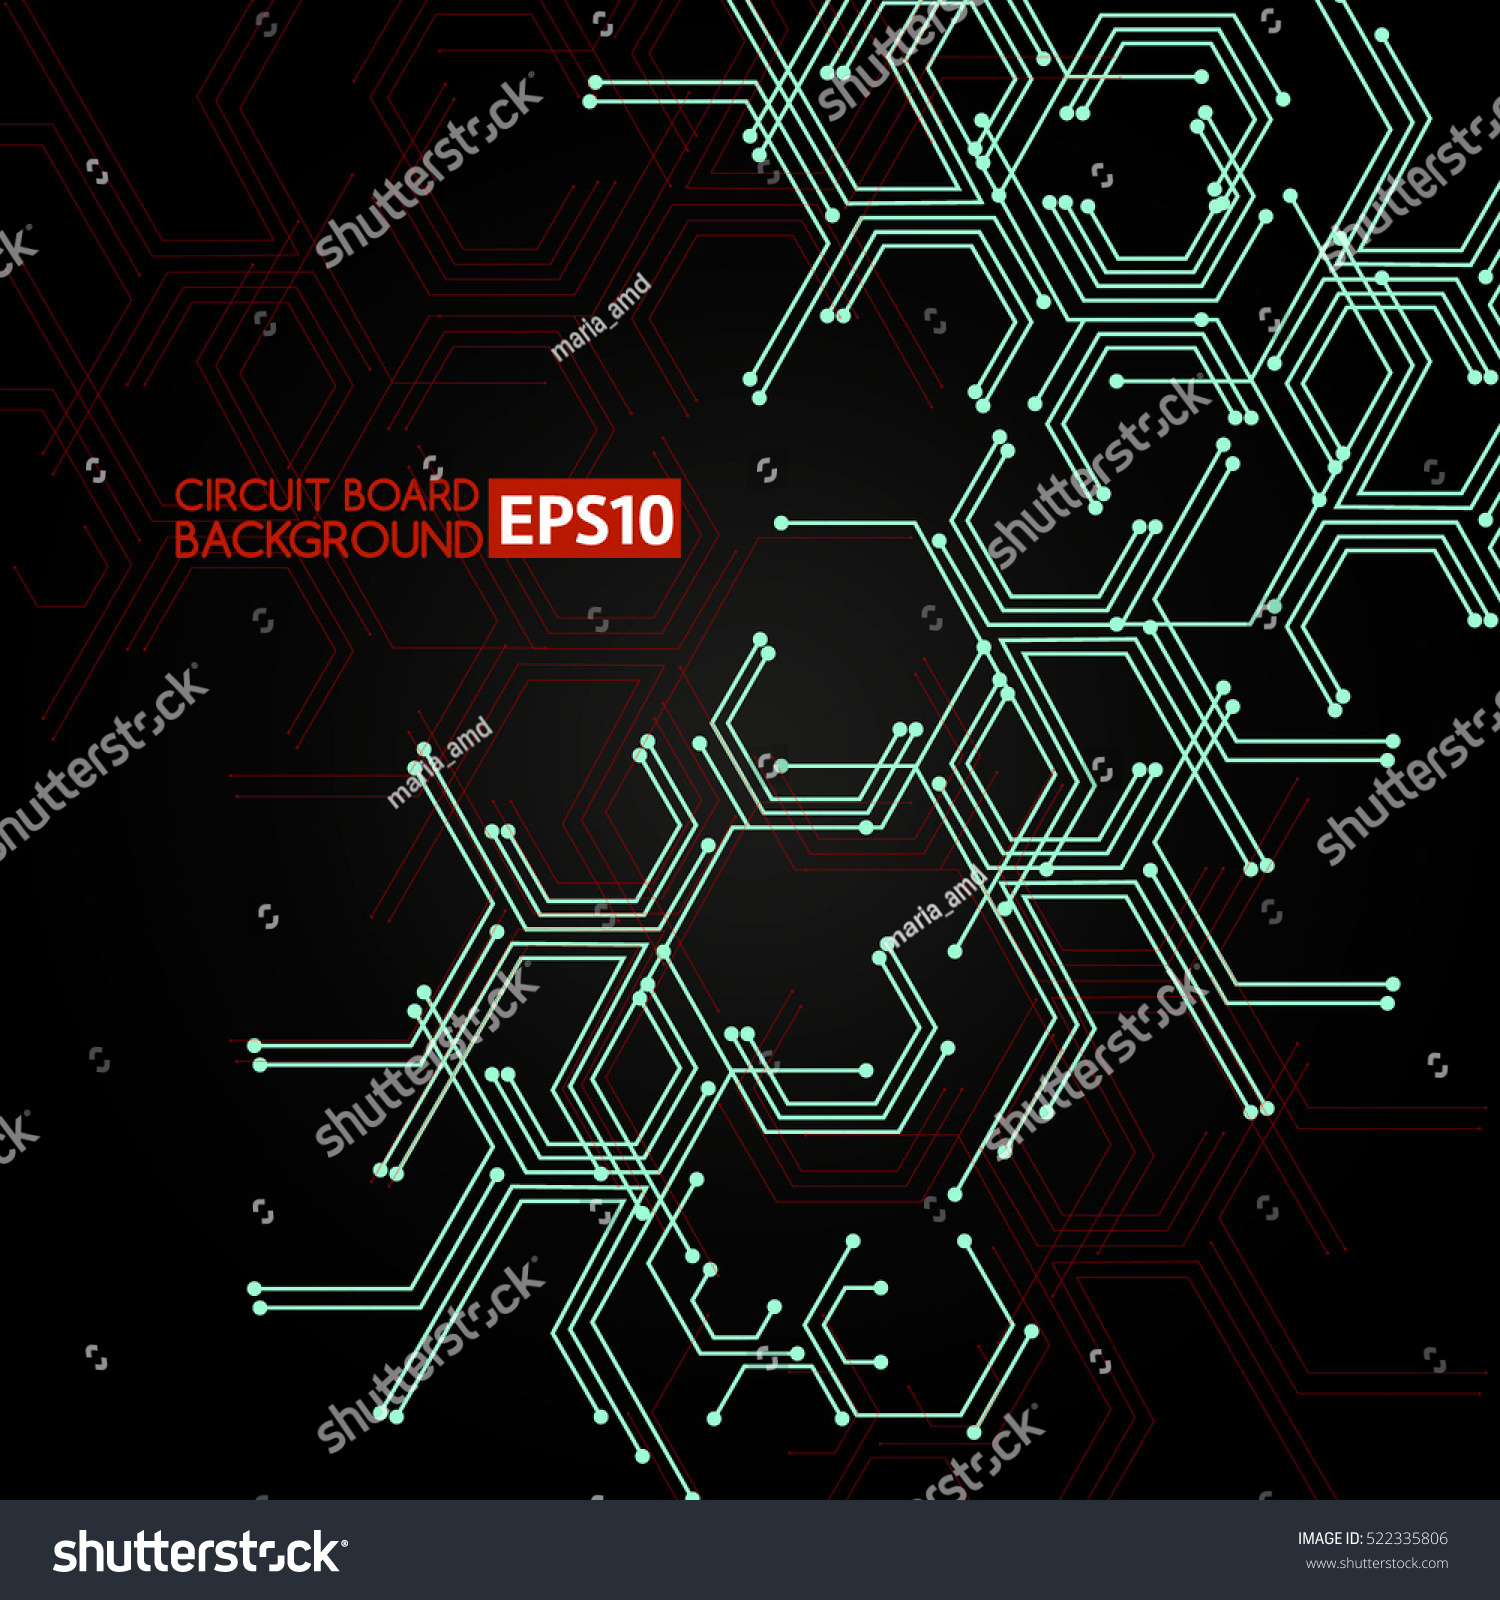 Circuit Board Vector Backgrounds Background Stock Image 45284500 Photo 27